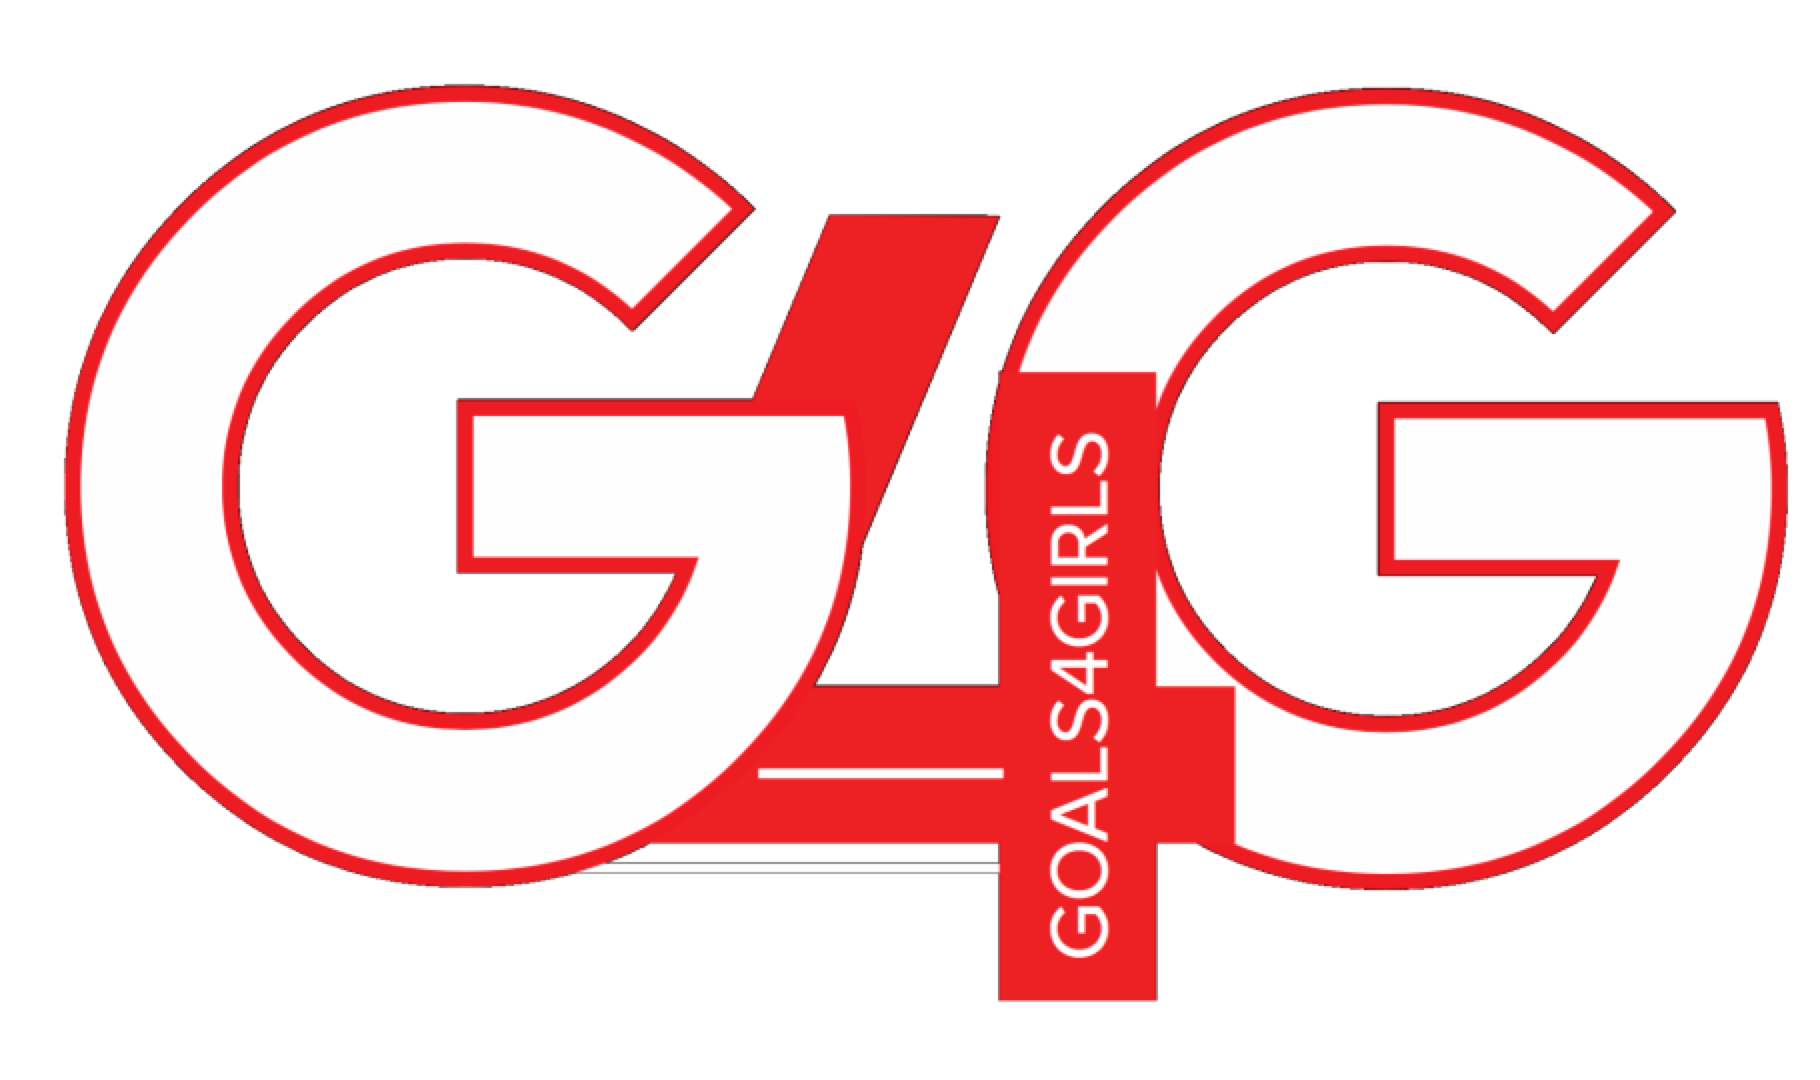 G4G Goals 4 Girls - Football development, coaching and mentoring